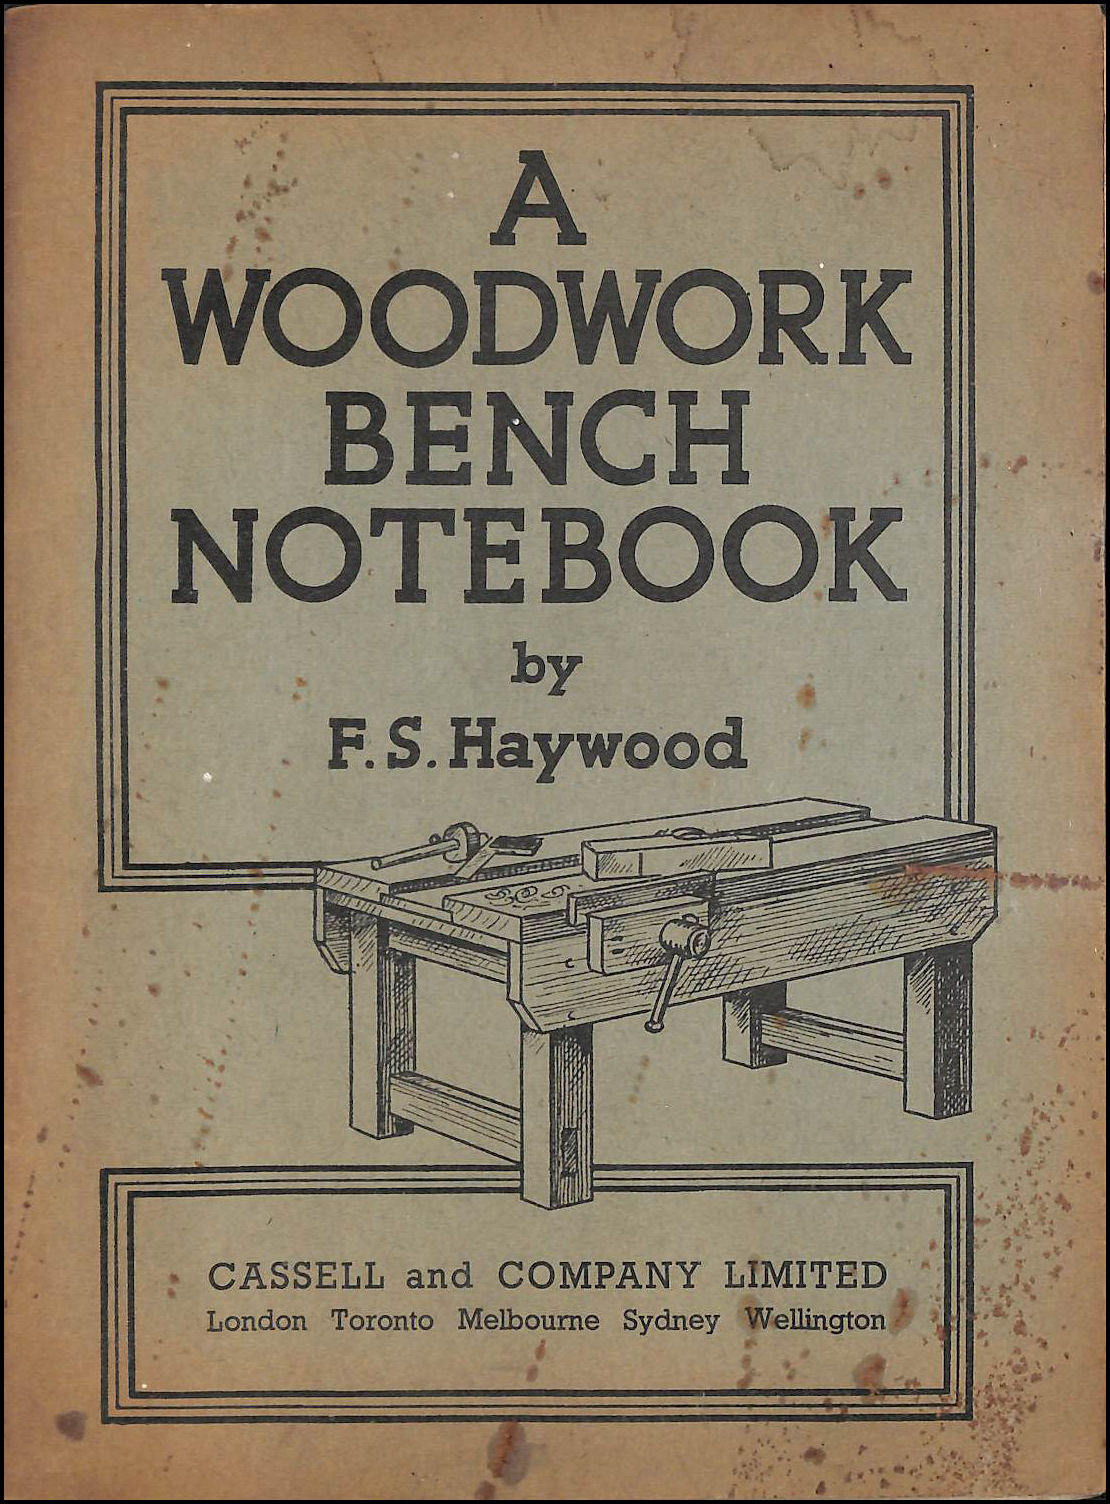 Woodwork Bench Notebook, Haywood, F.S.